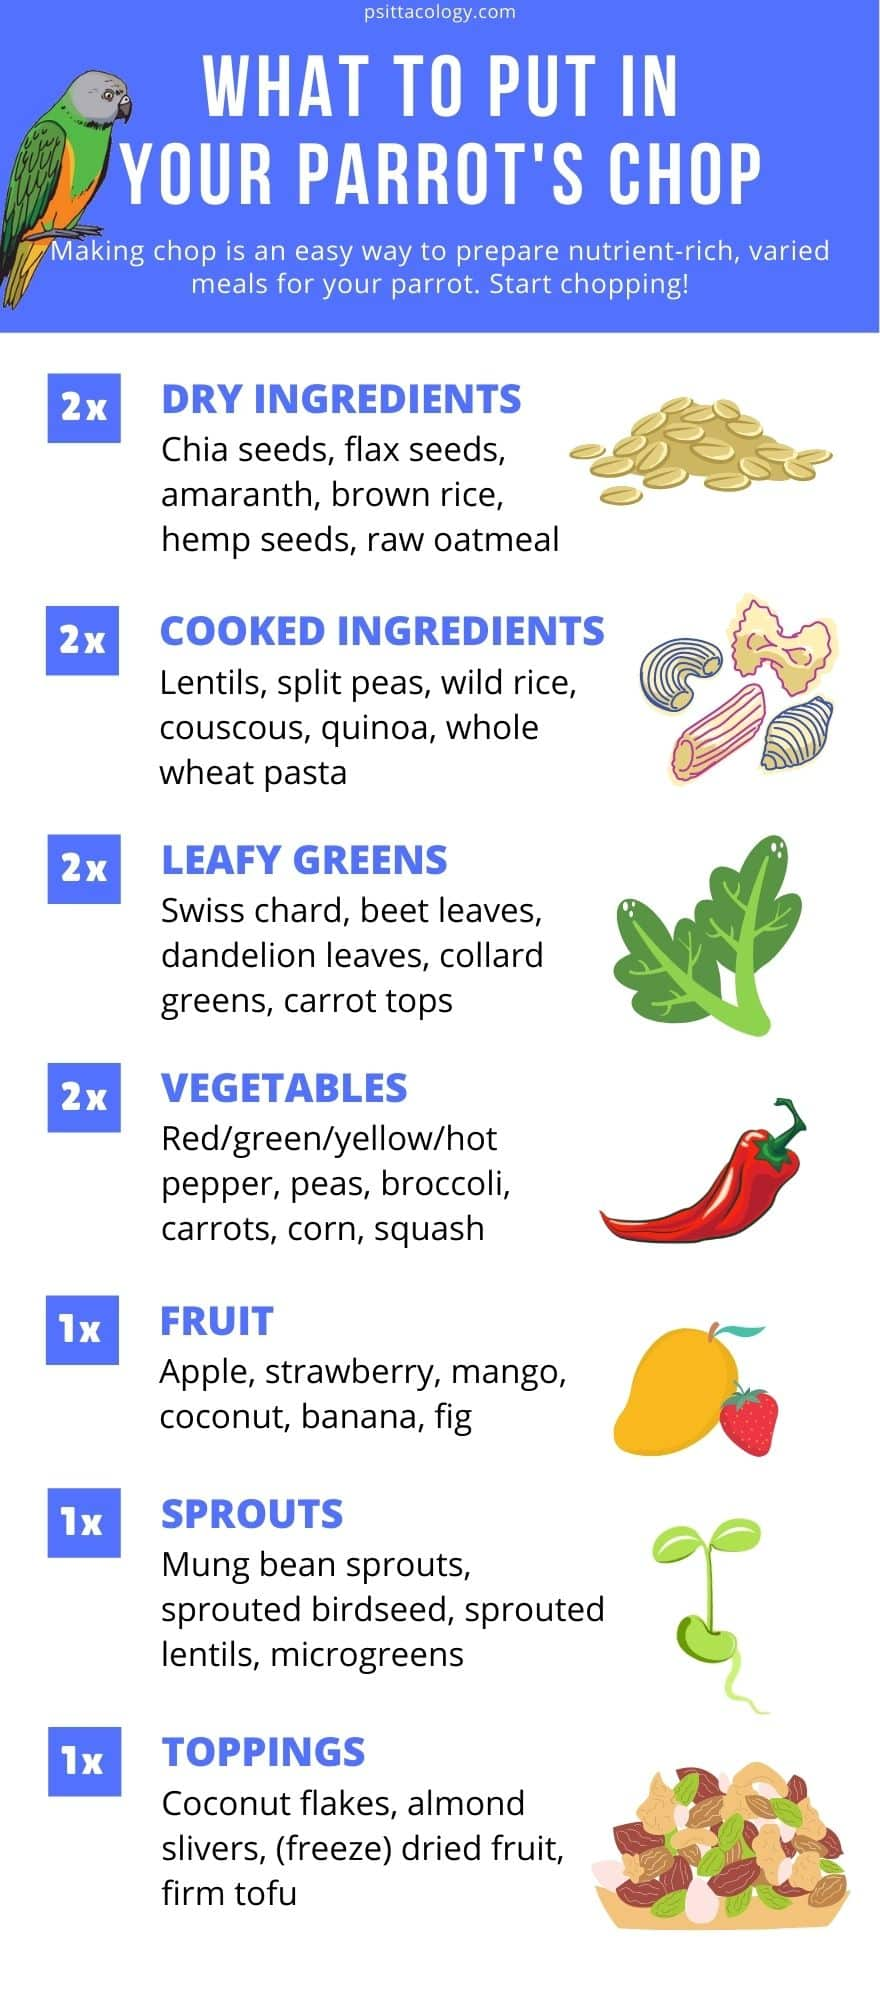 Infographic listing possible ingredients for chop food for parrots.